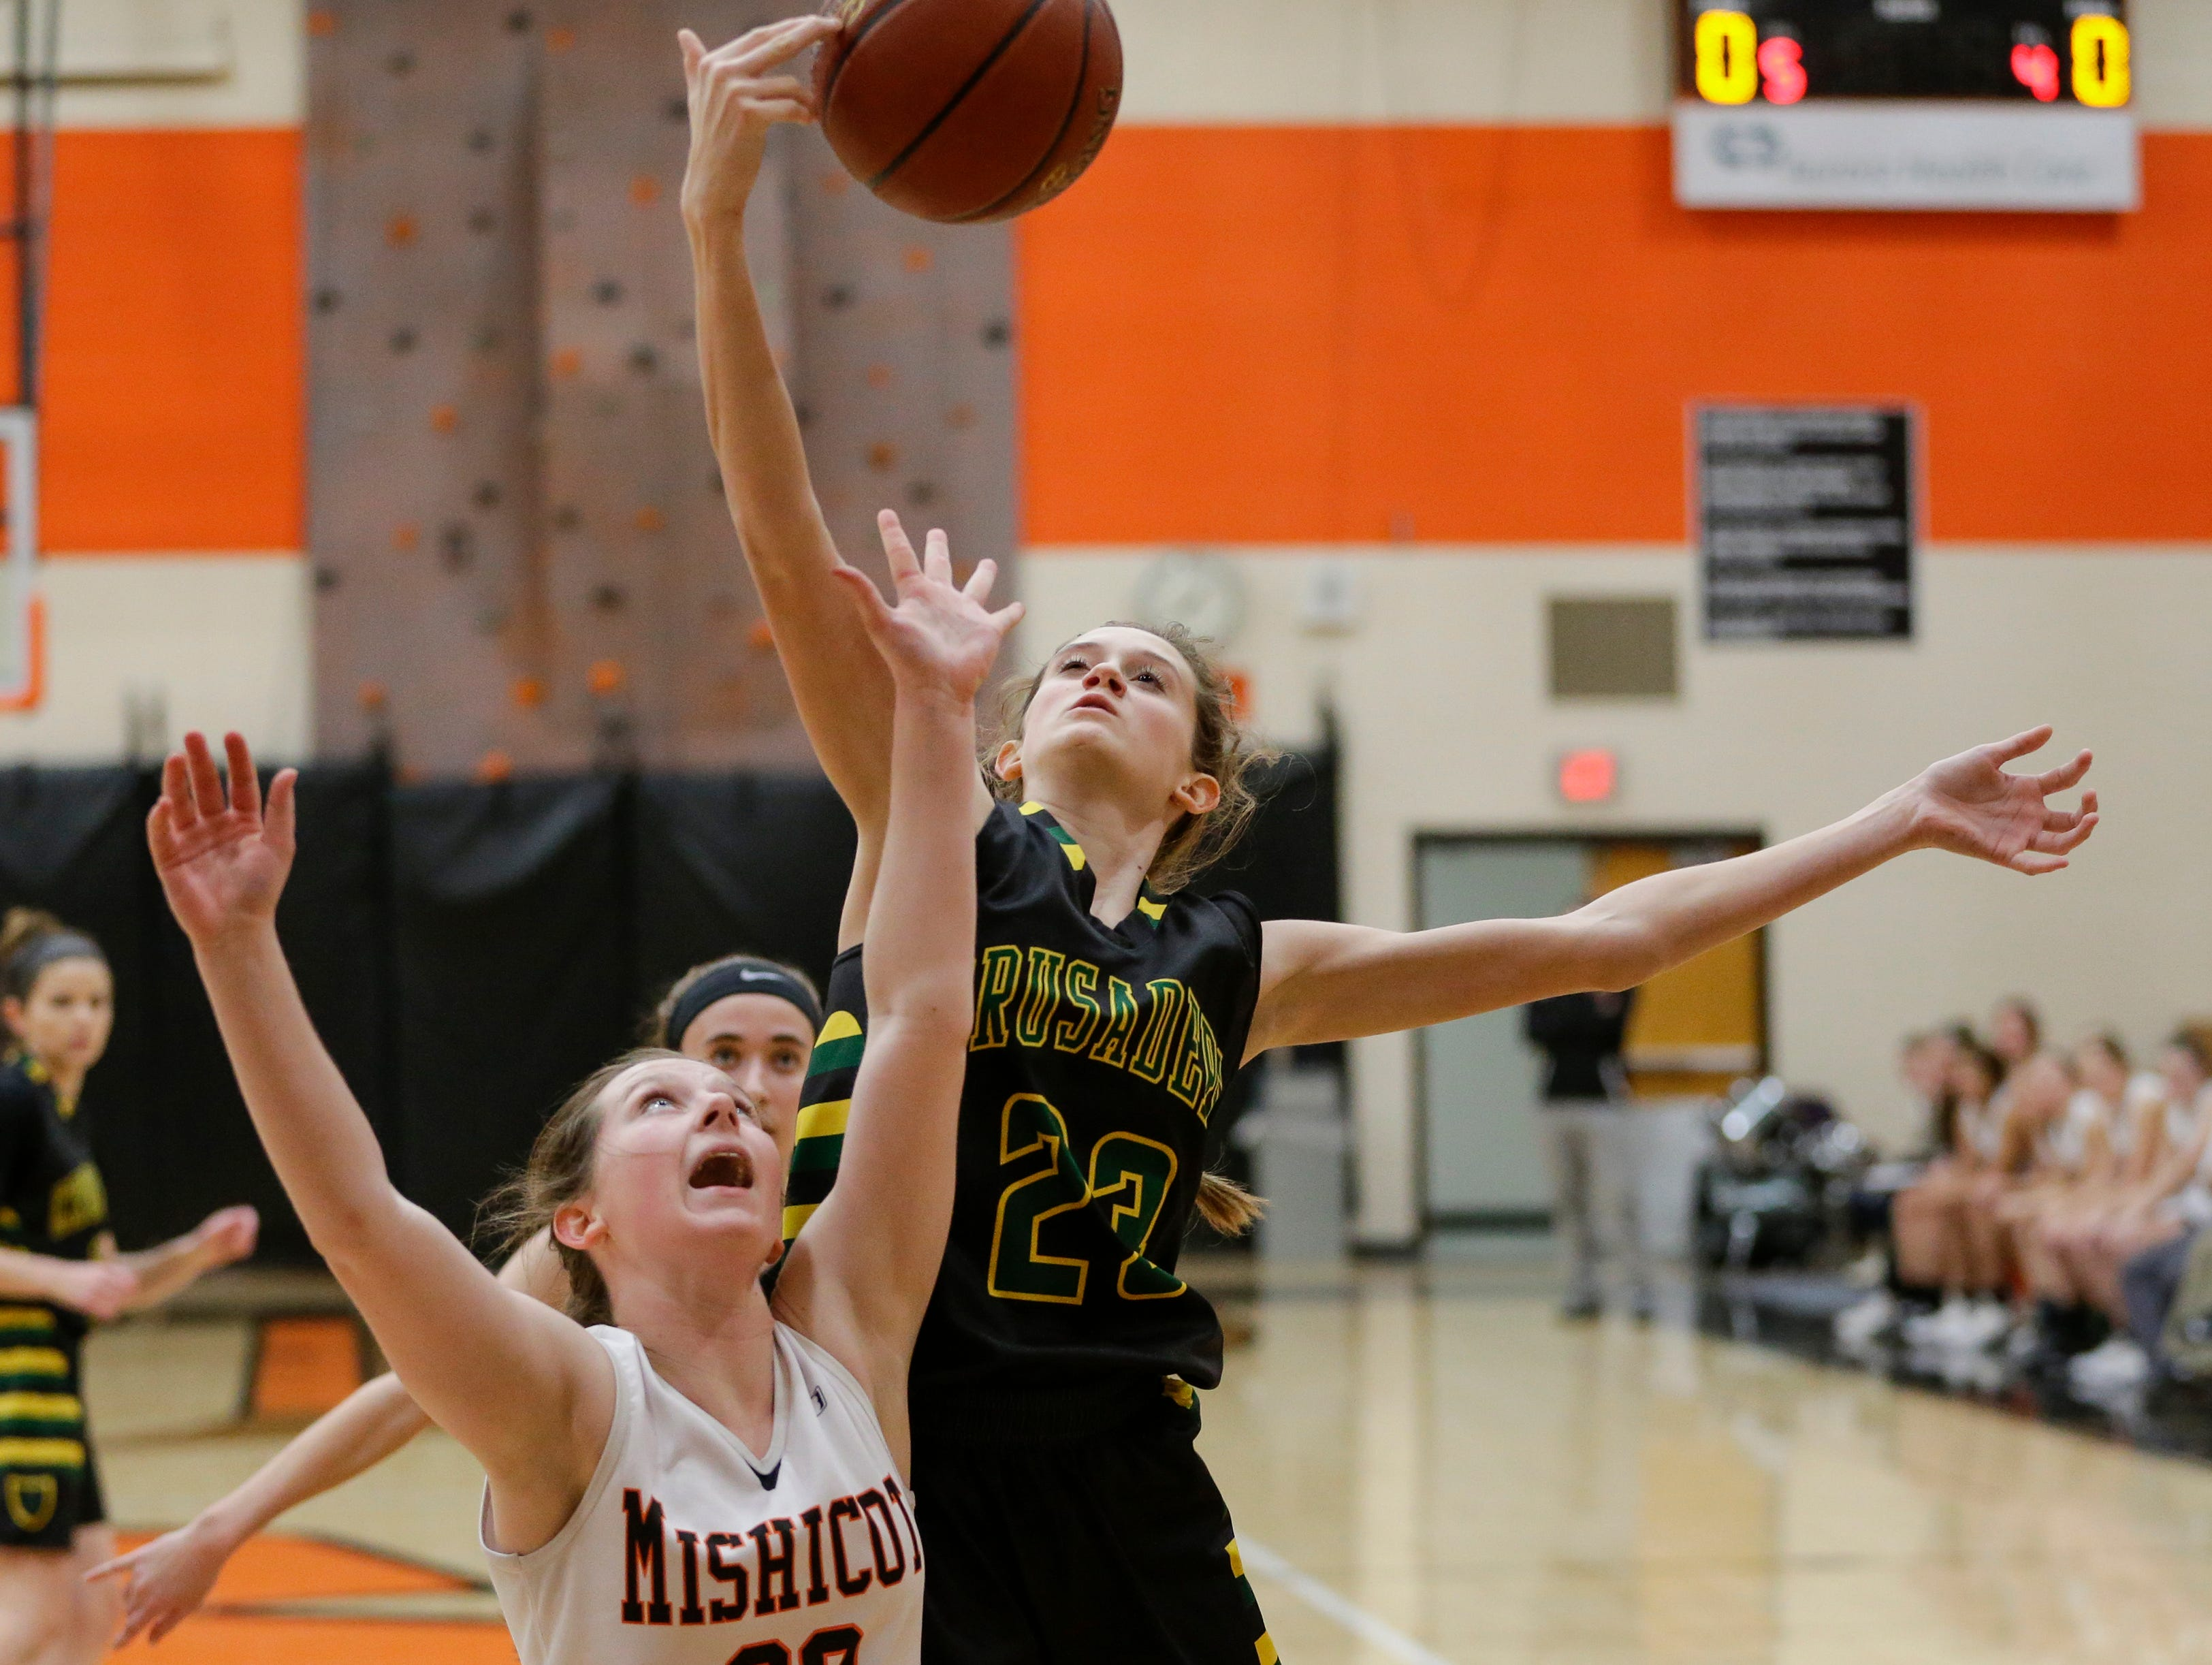 Sheboygan Area Lutheran's Carly Schreurs (23) rebounds against Mishicot during a Big East Conference matchup at Mishicot High School Friday, January 11, 2019, in Mishicot, Wis. Joshua Clark/USA TODAY NETWORK-Wisconsin